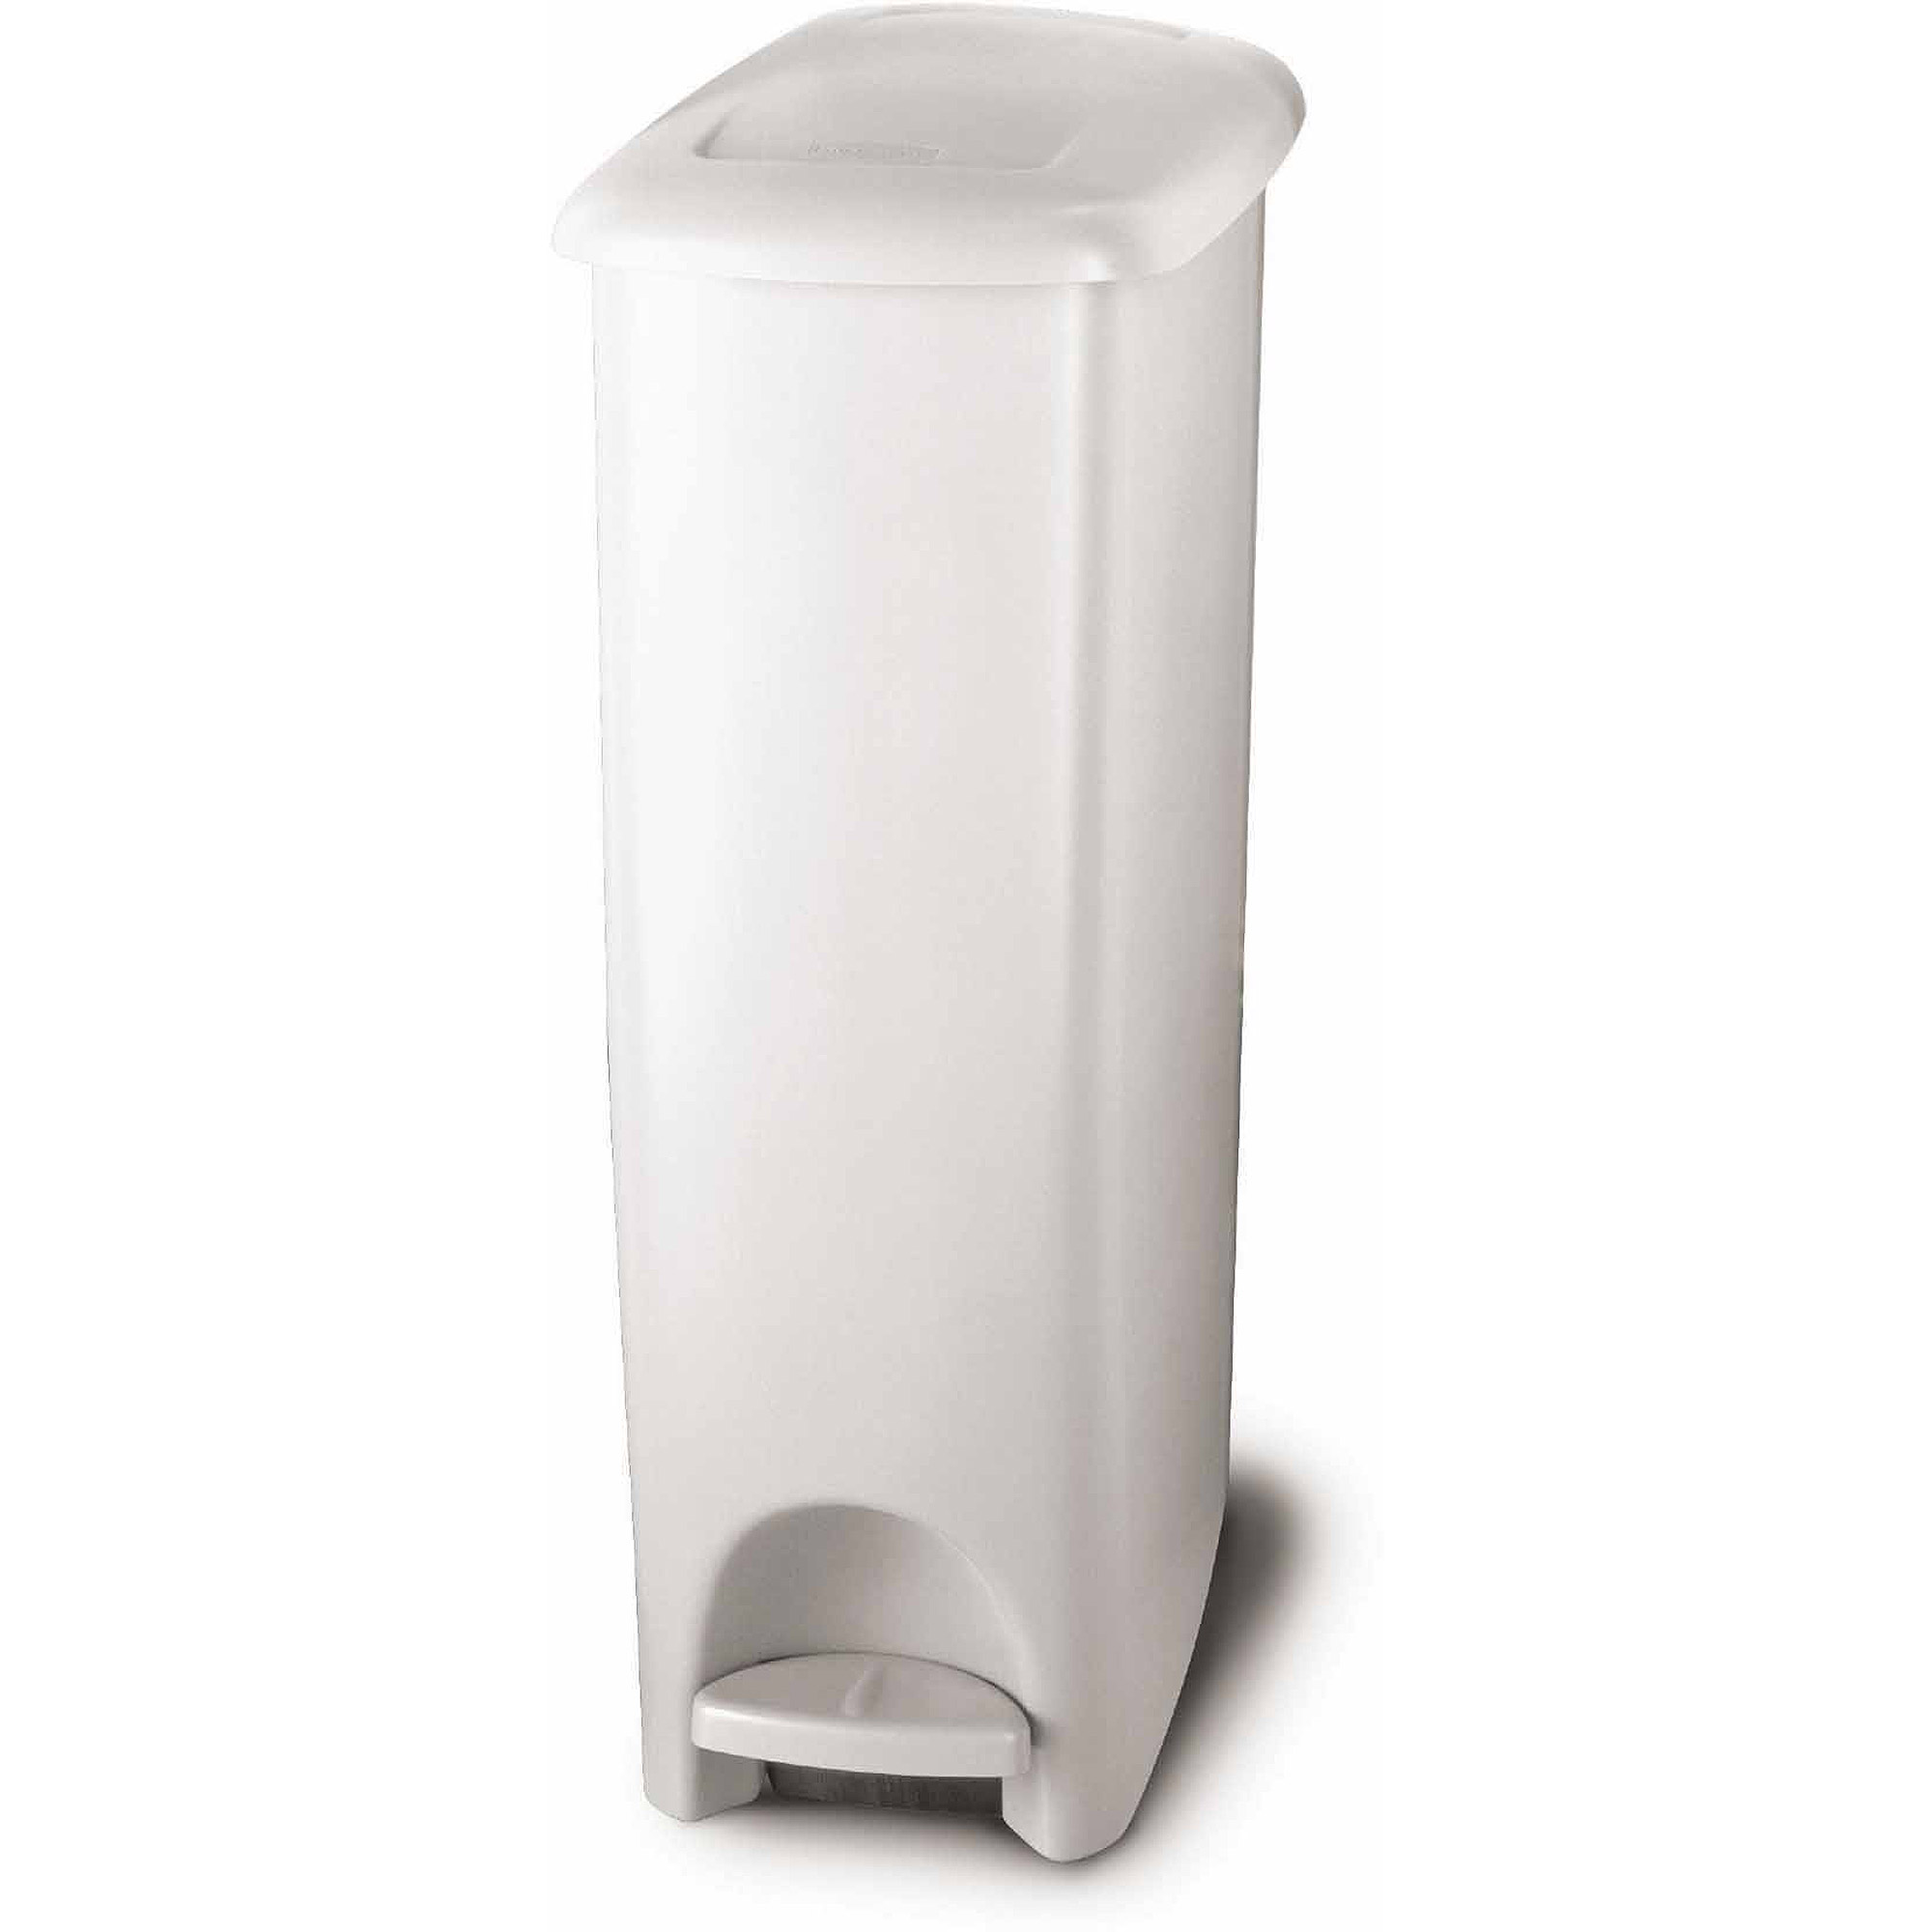 White Bathroom Garbage Cans rubbermaid step-on slim fit trash can, 11.25 gal, white - walmart